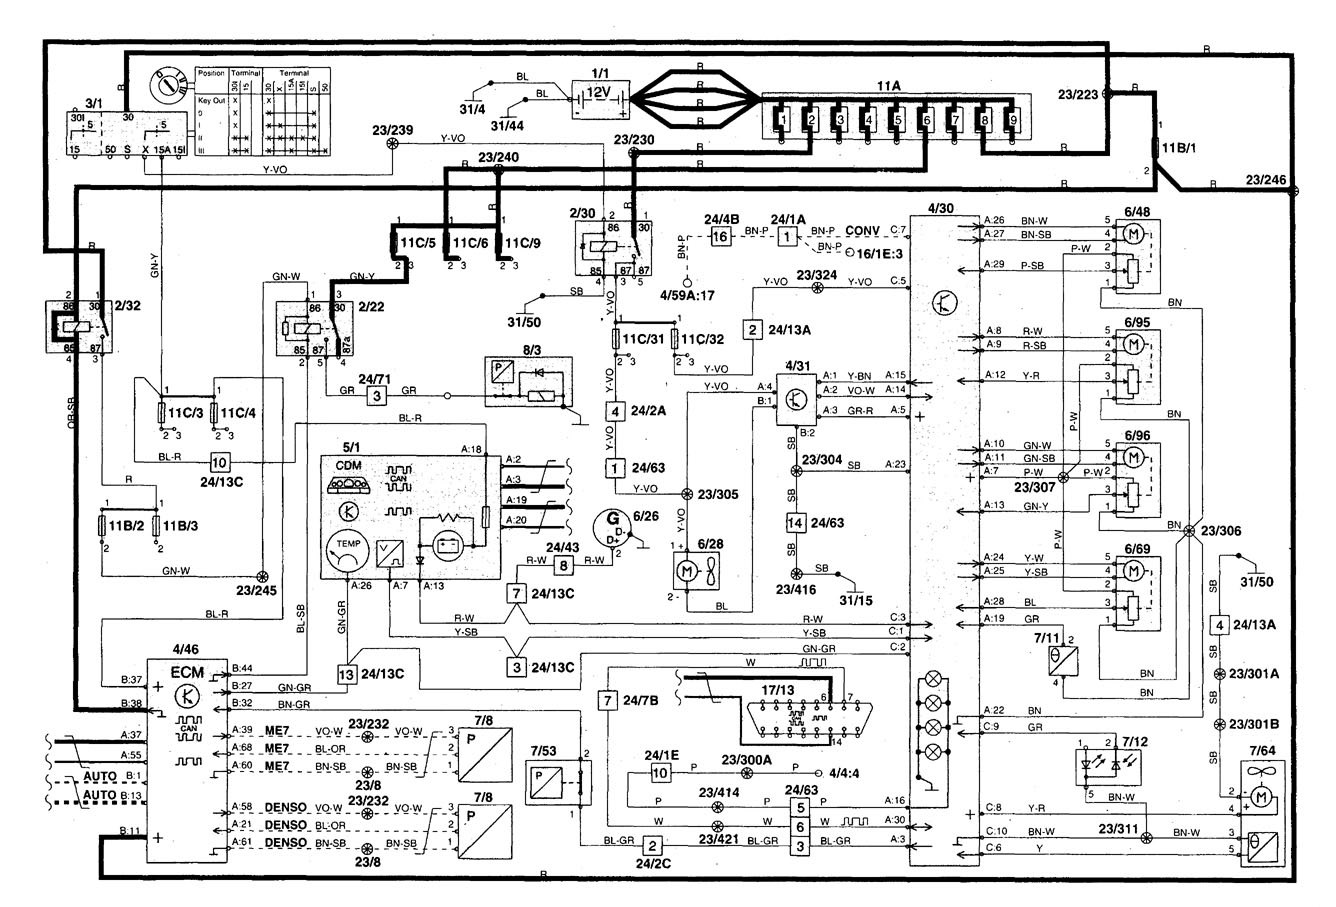 2000 Volvo S70 Wiring Diagram Internal Diagrams D12 Schematic 1998 Hvac Controls Carknowledge Truck Air Supply